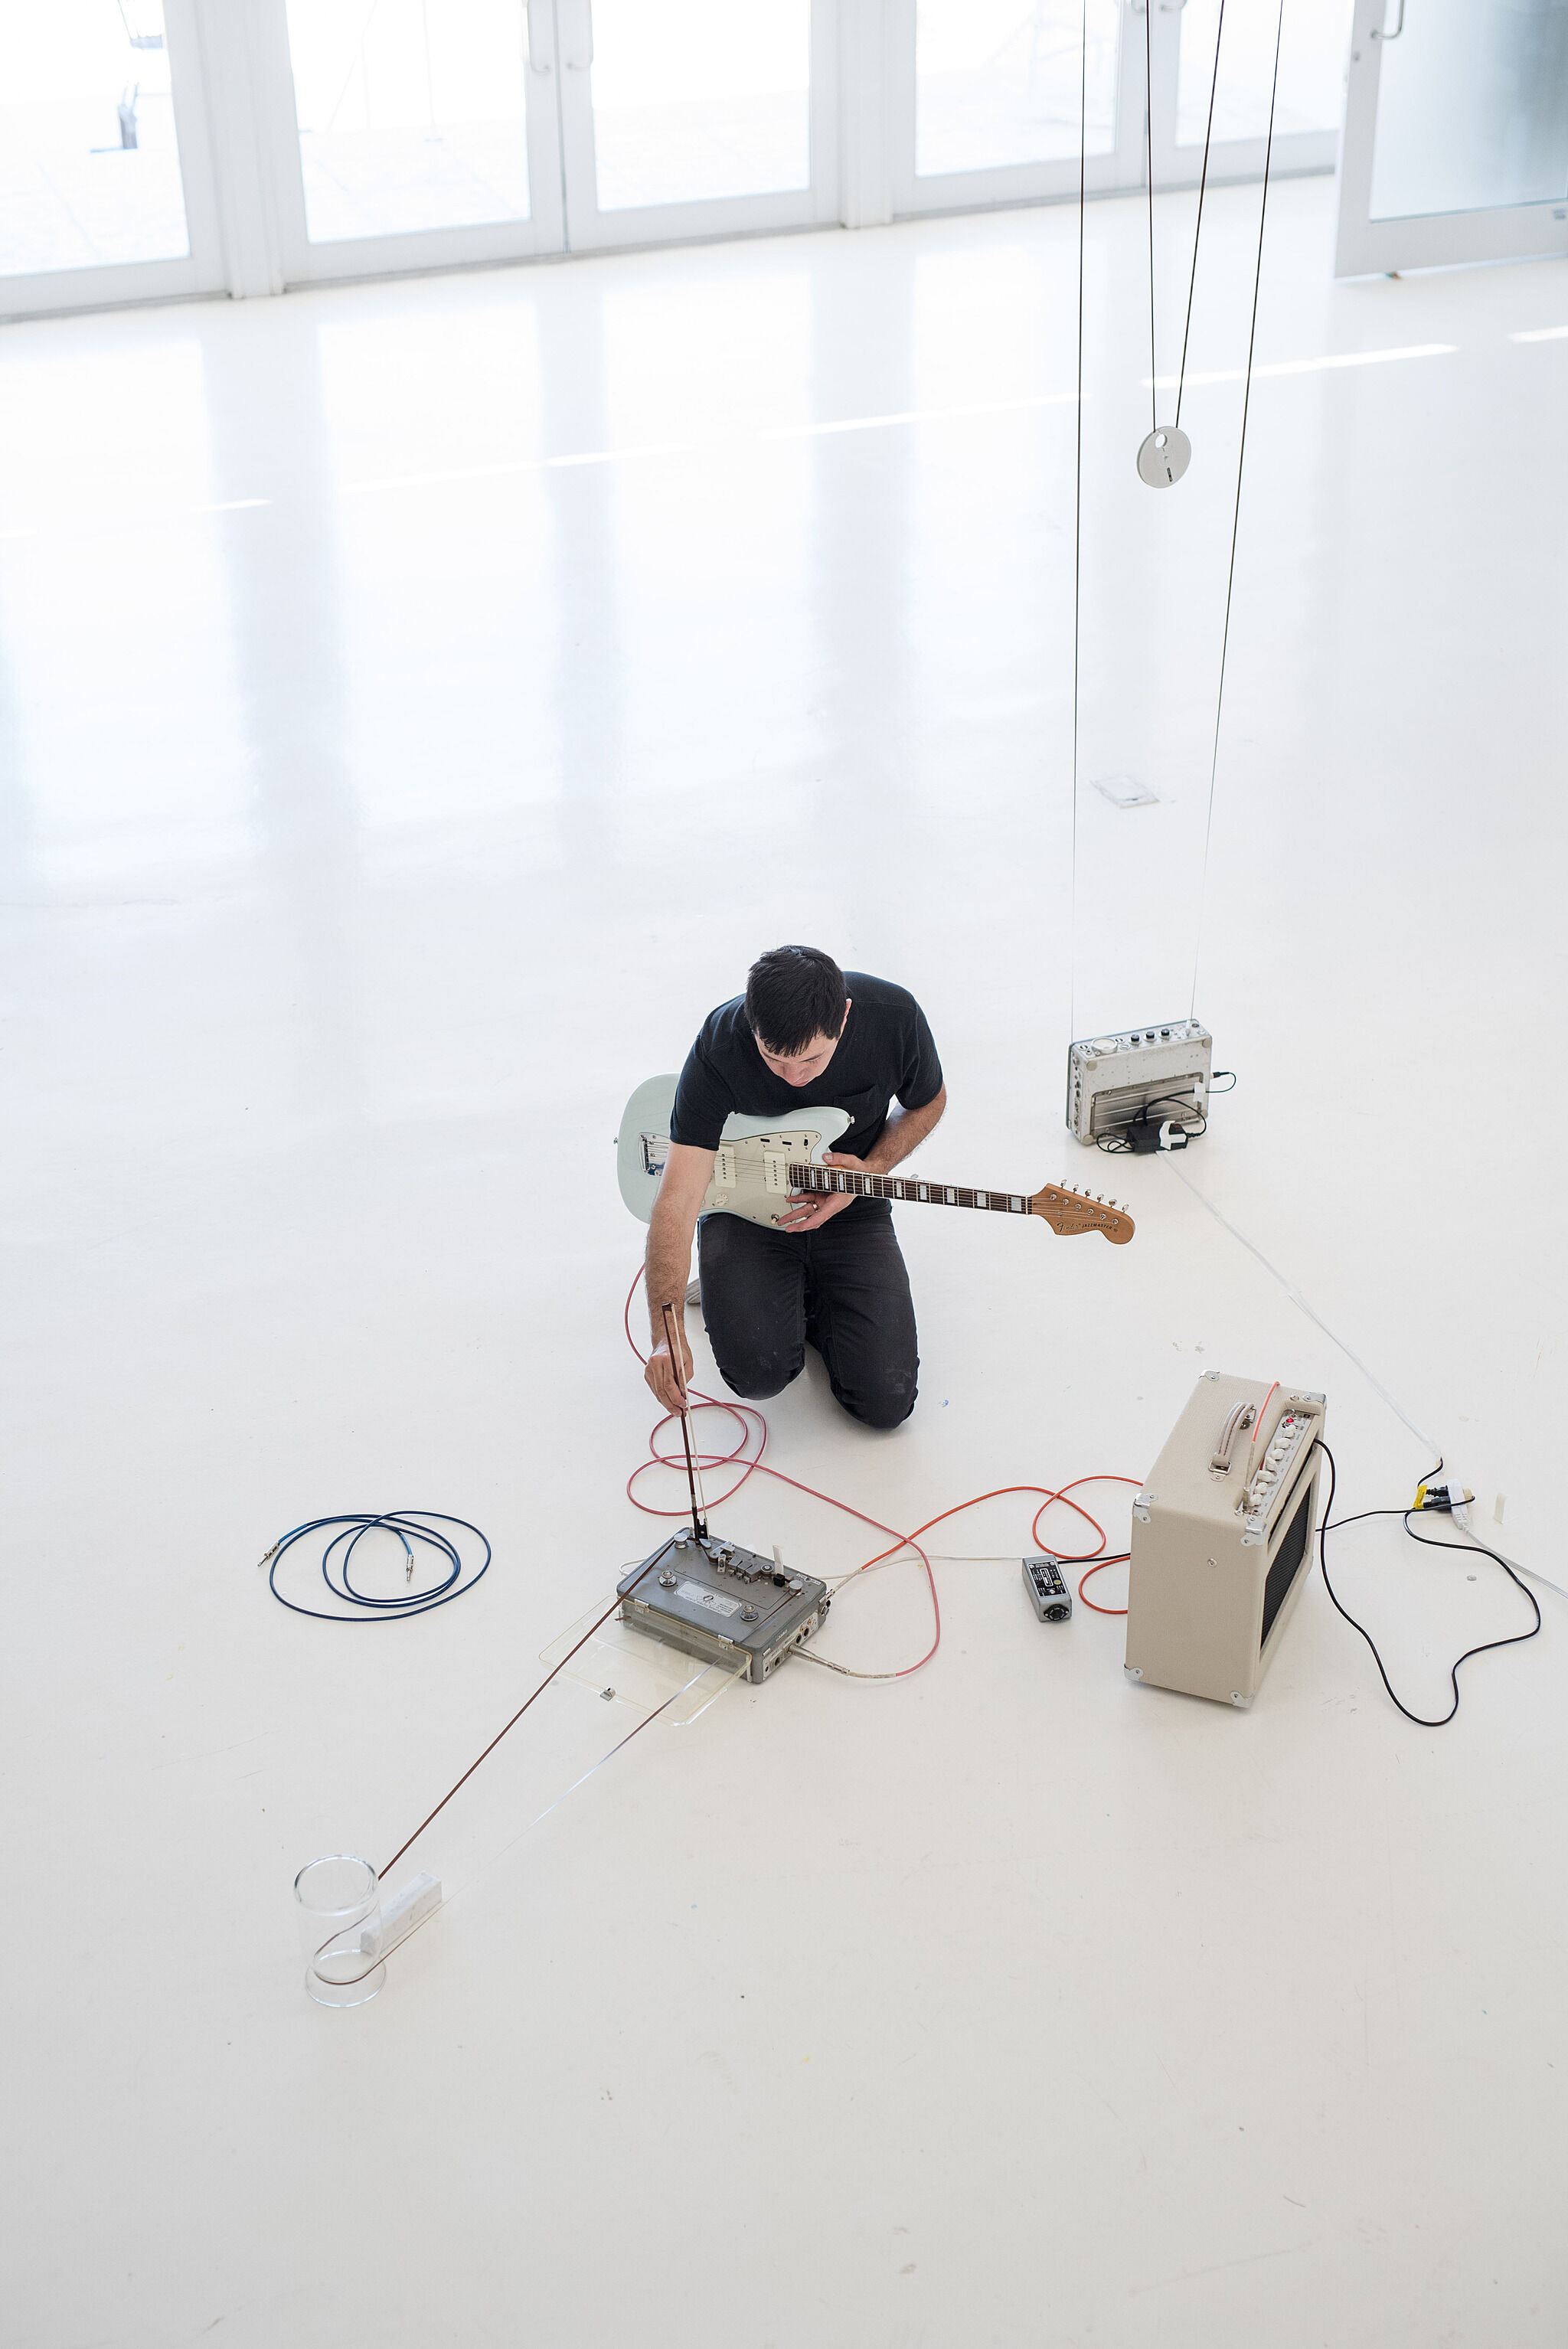 An aerial view of an artist generating a sound installation with a guitar.